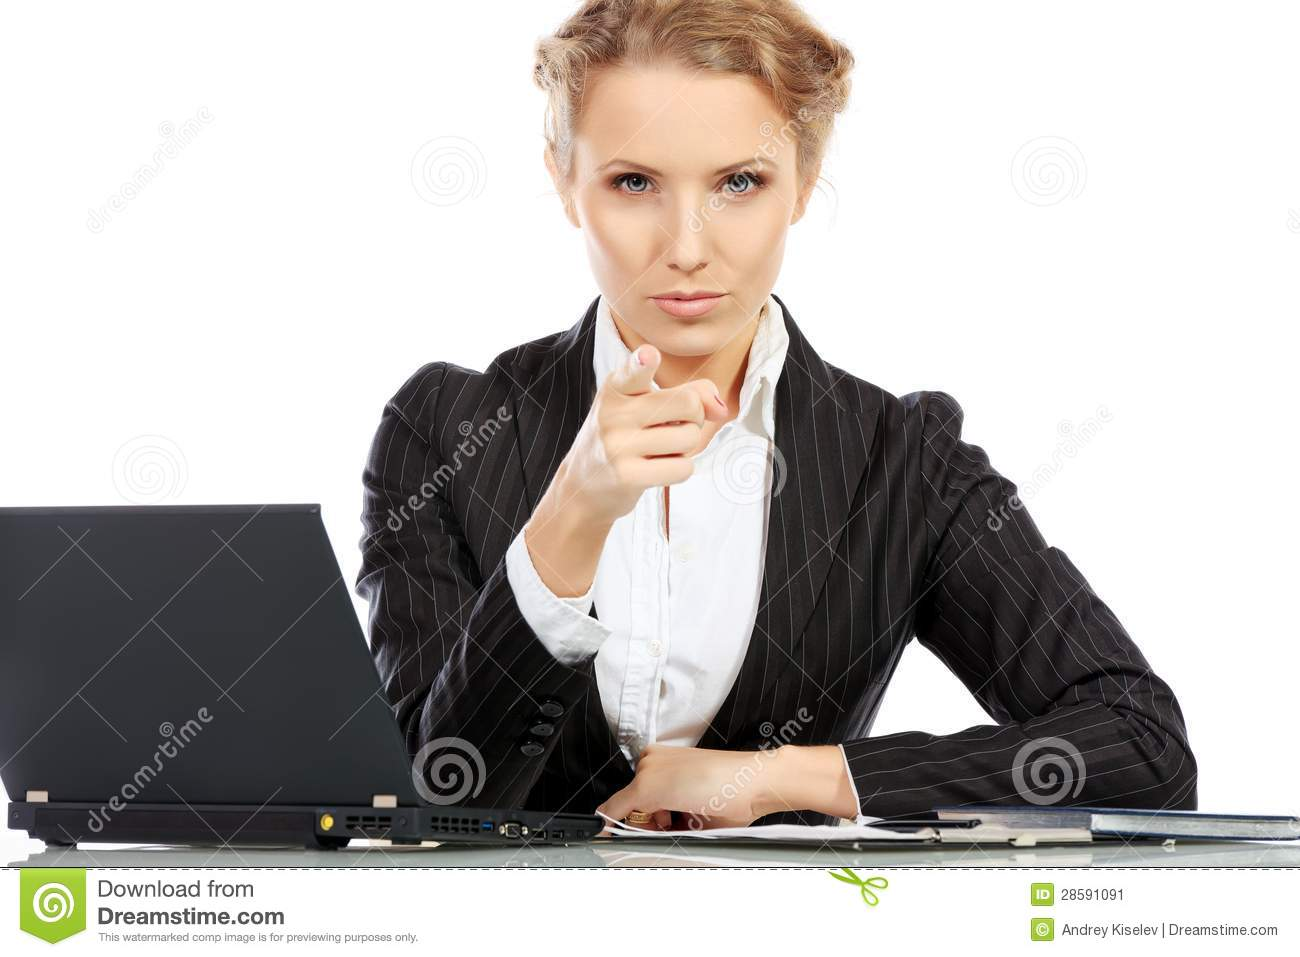 Strict manager stock image Image of businesspeople office  28591091